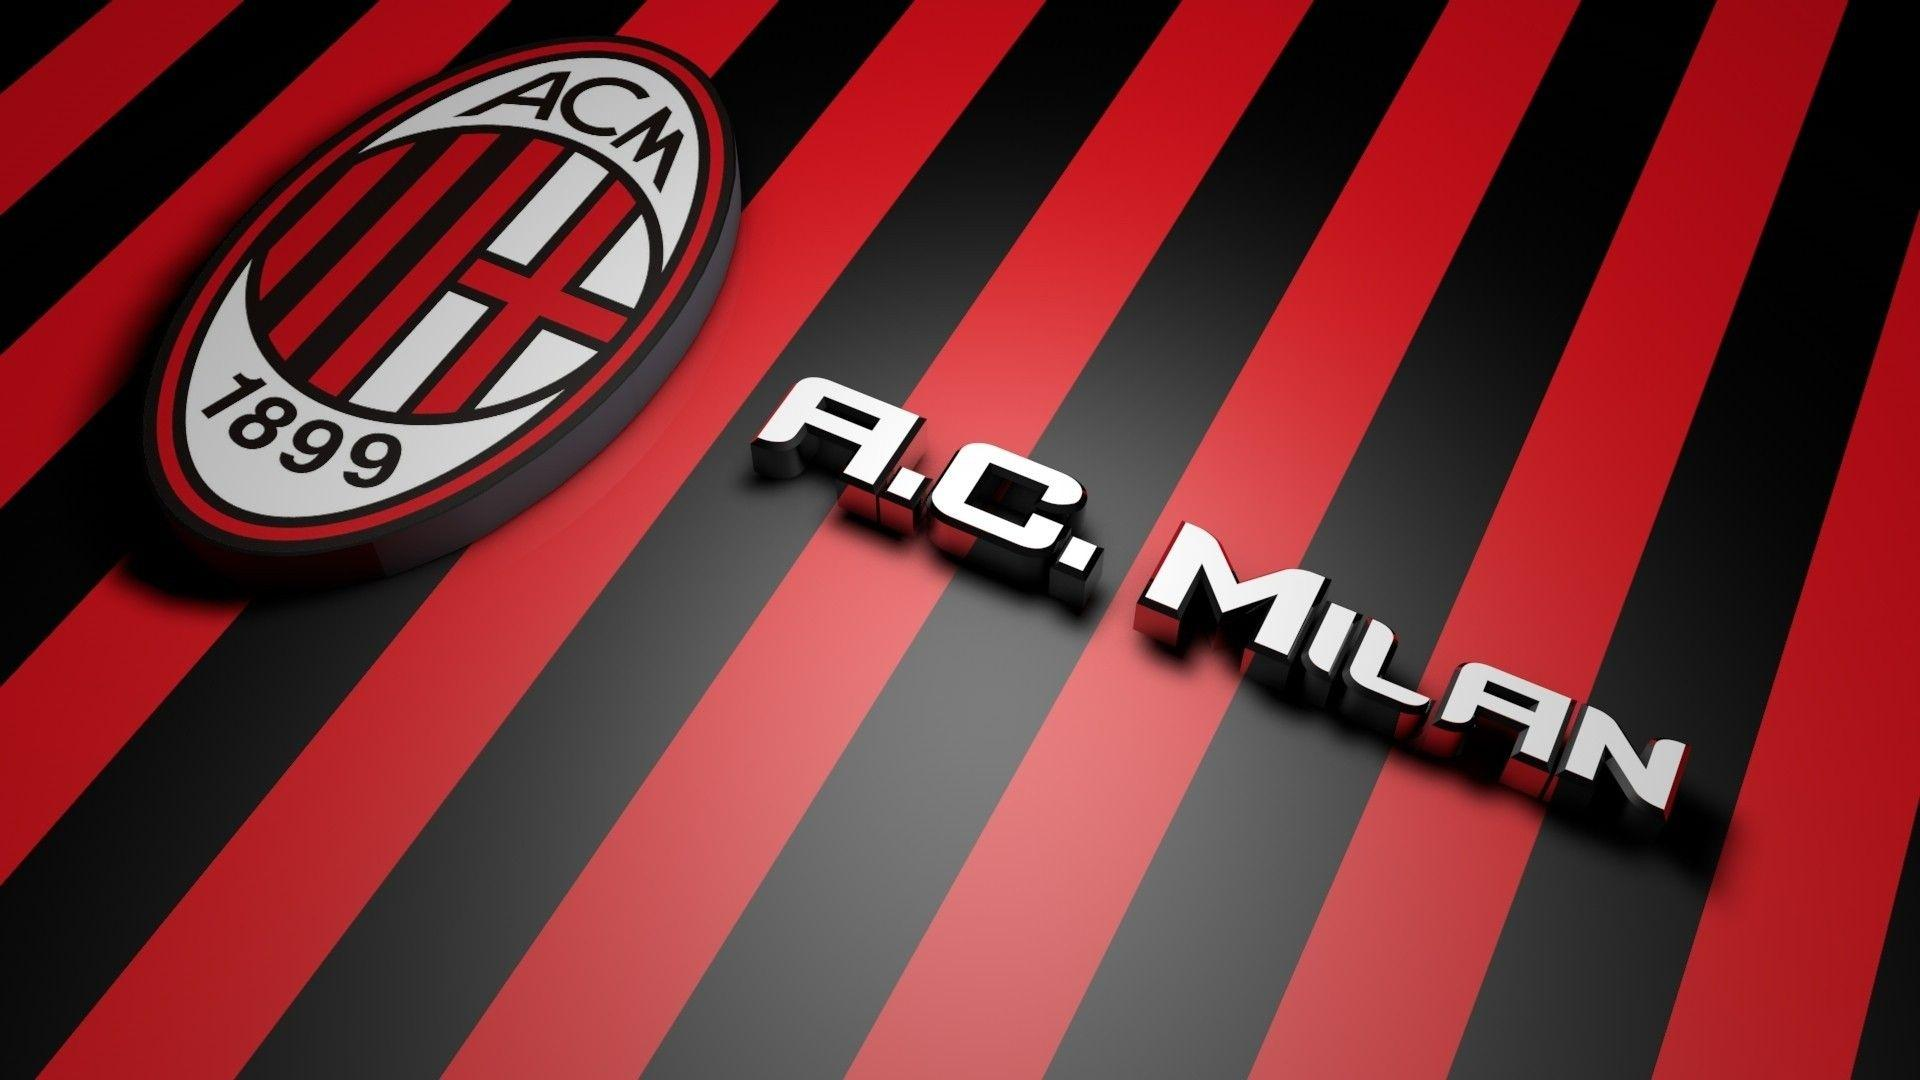 AC Milan Full HD Wallpapers - Wallpaper Cave